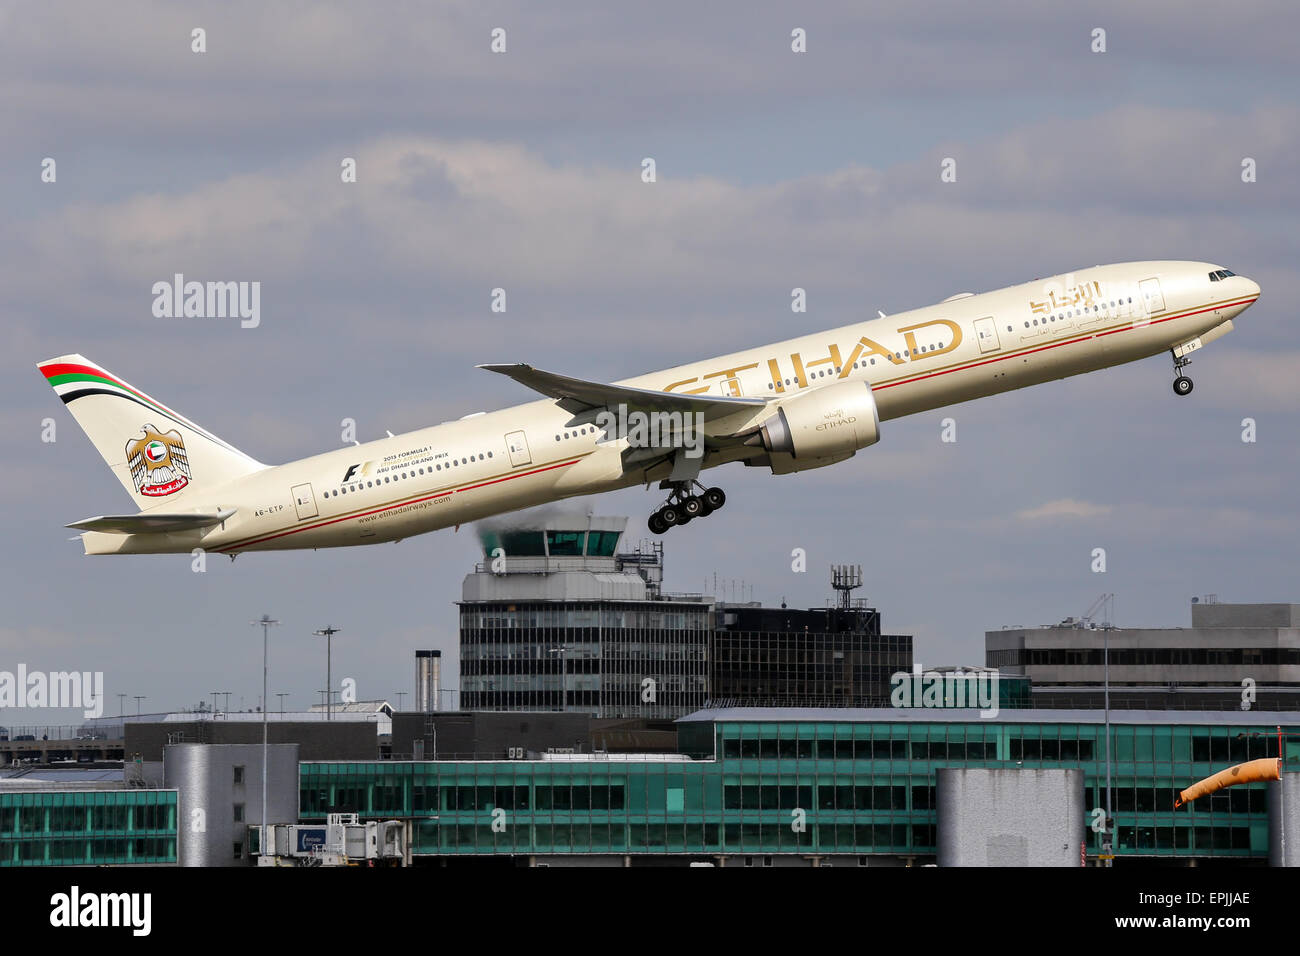 Etihad Airways Boeing 777-300 climbs away from runway 05L at Manchester airport. Stock Photo